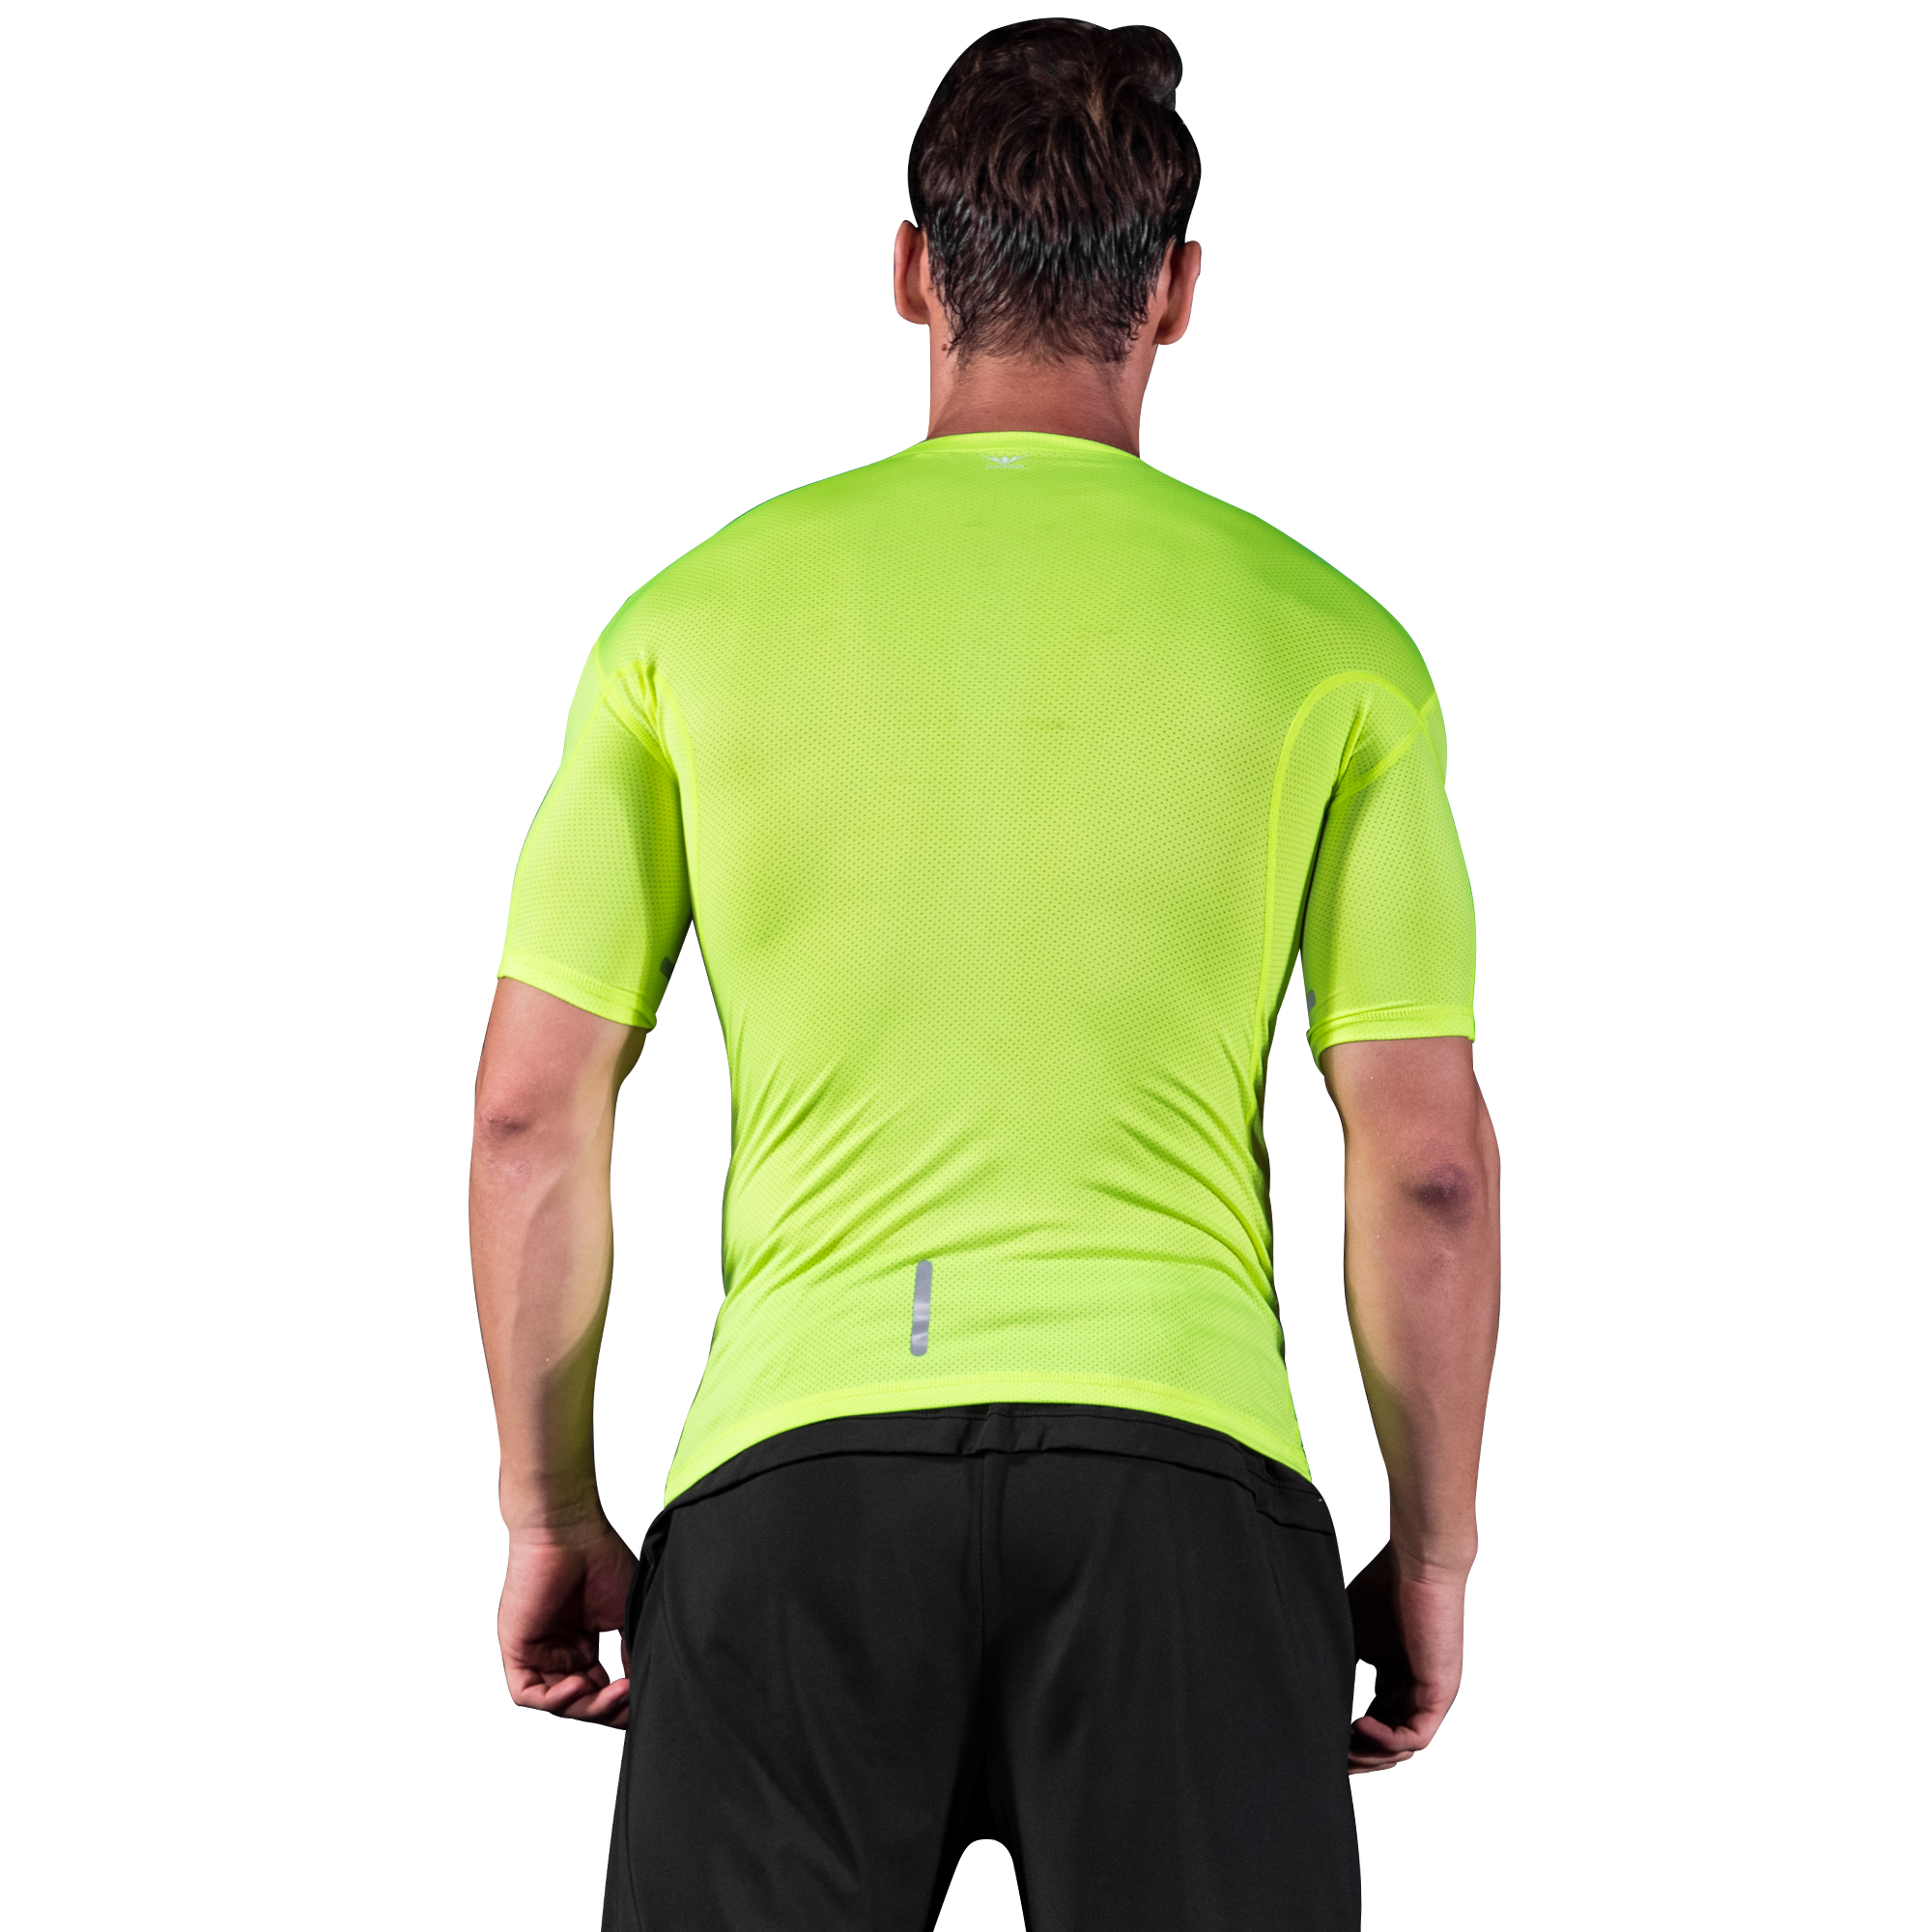 Buy Visibility Safety Adjustable Running Shirts , Visibility Safety Adjustable Running Shirts Quotes, Supply Visibility Safety Adjustable Running Shirts